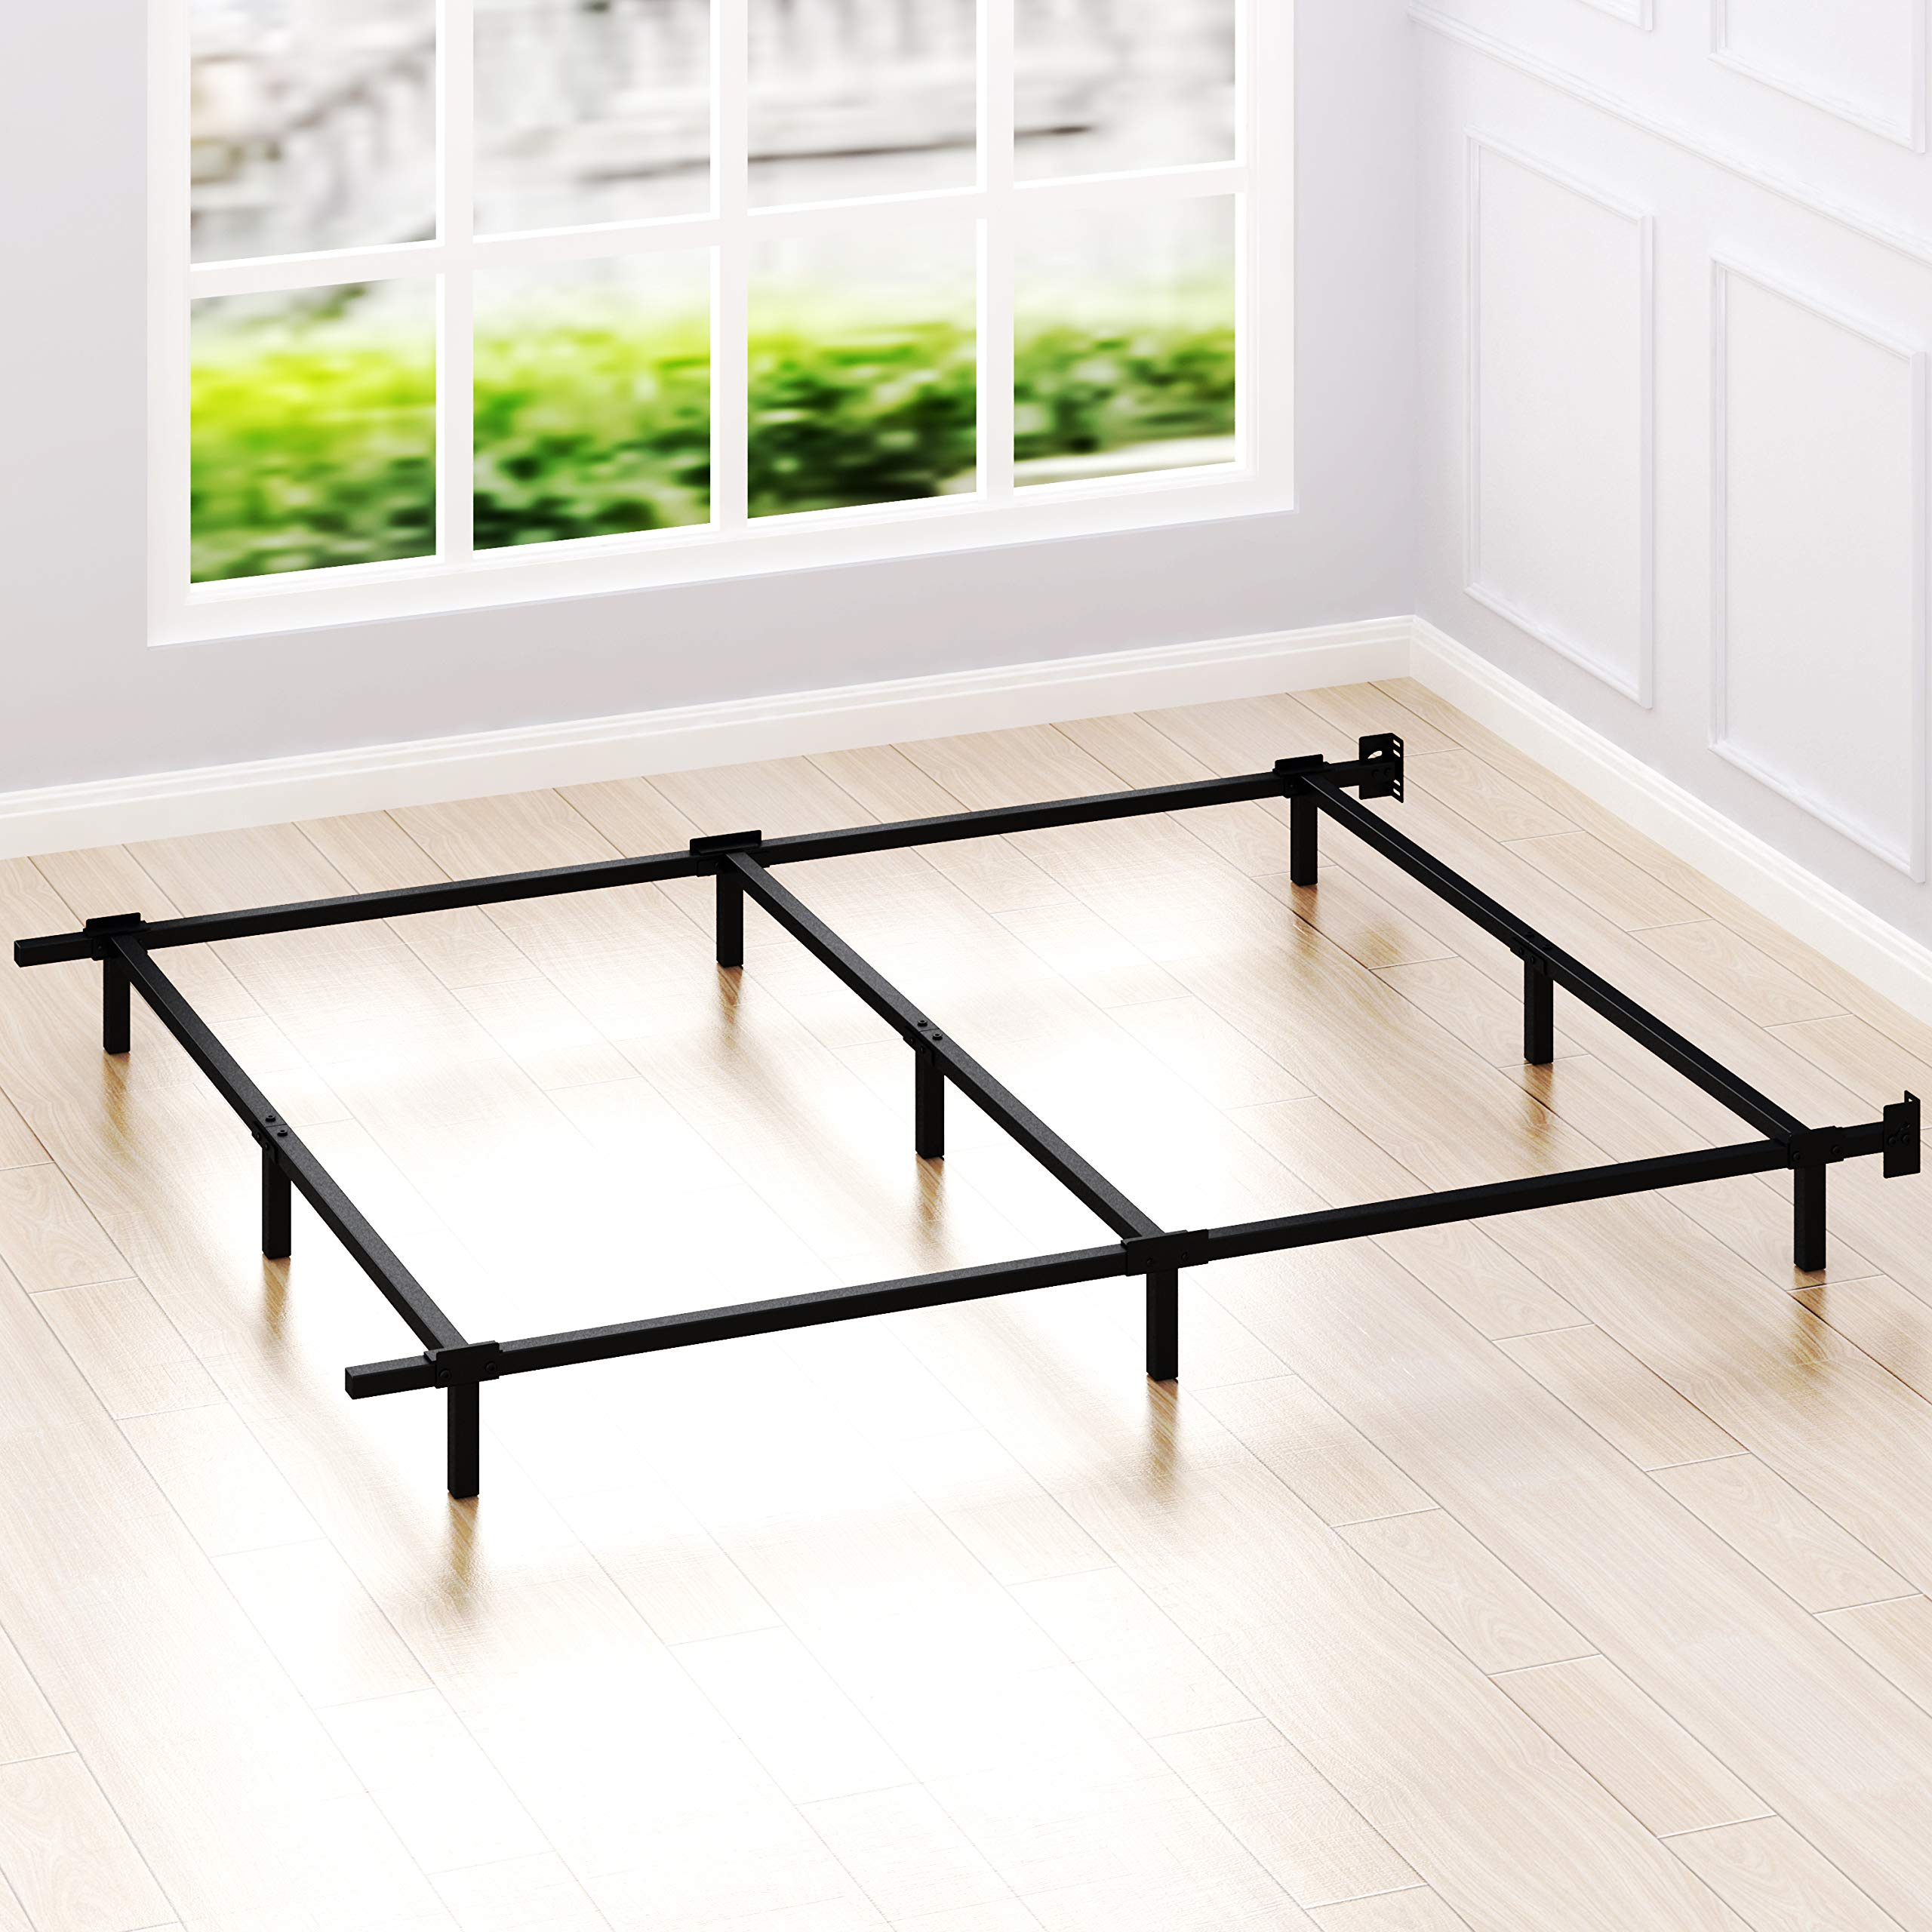 Simple Houseware Stable Bed Frame, Full by Simple Houseware